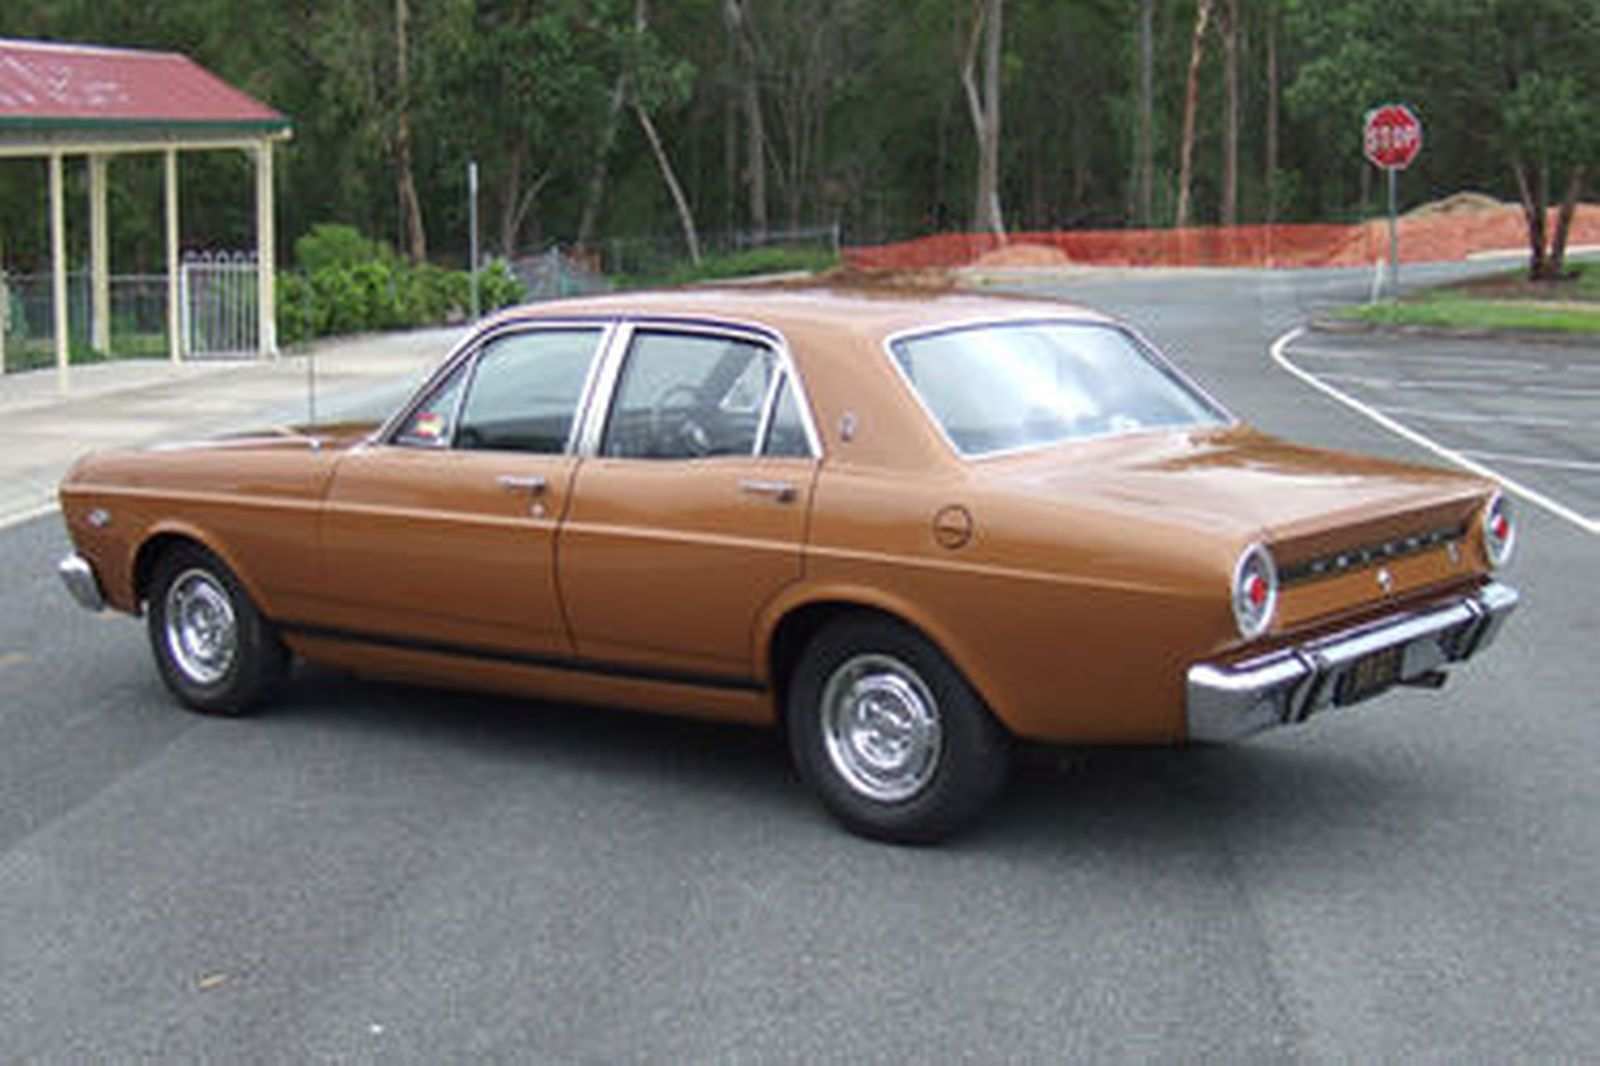 Sold: Ford Falcon XR GT Sedan Auctions - Lot 8 - Shannons